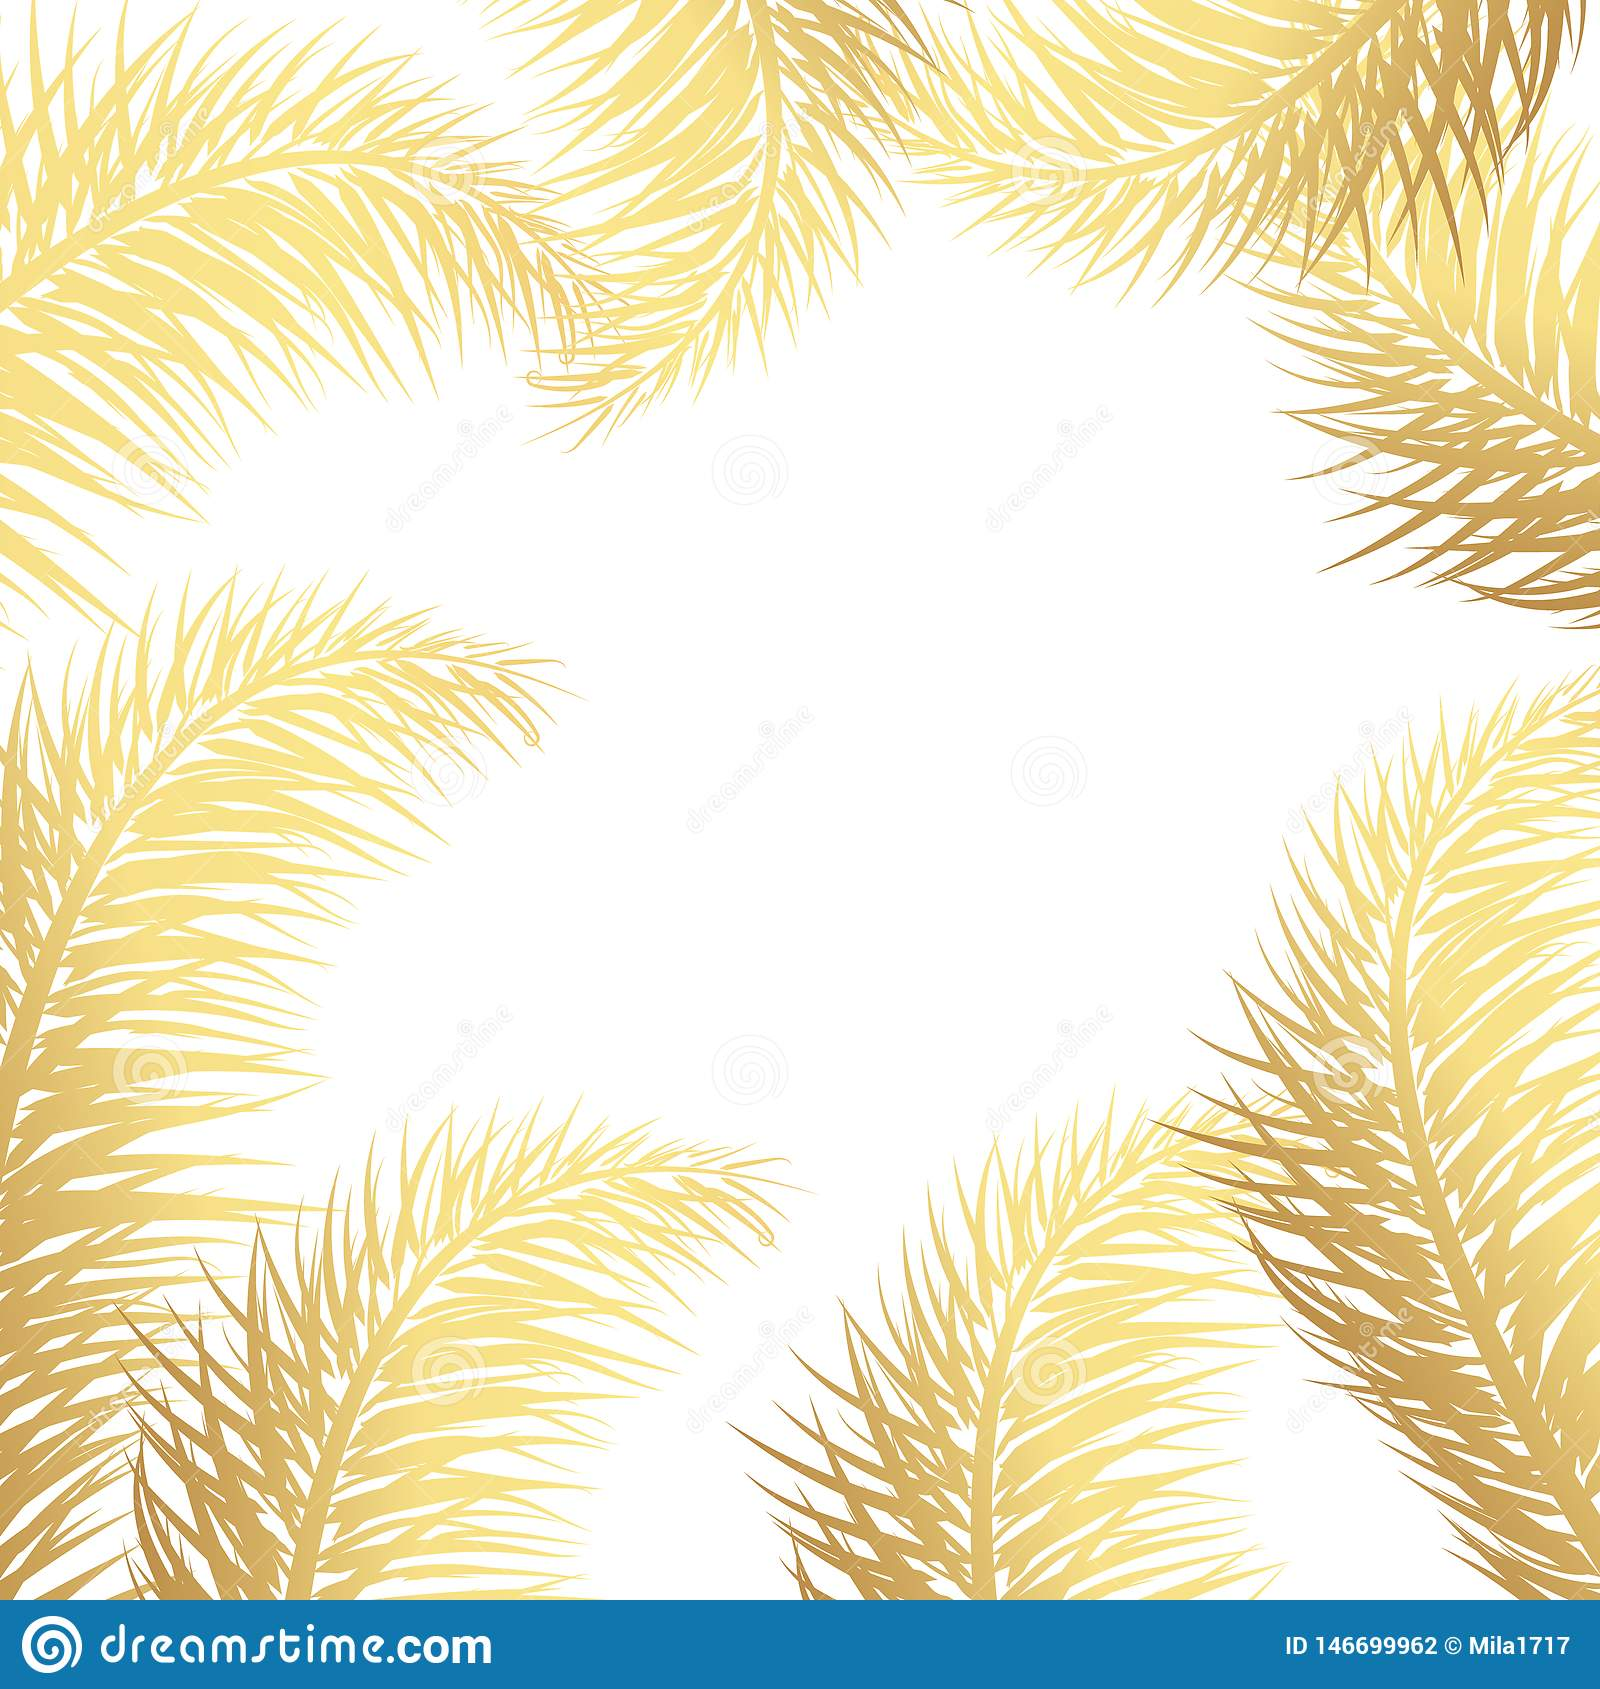 Gold Palm Leaf Vector Background Tropical Drawn Text Background Stock Illustration Illustration Of Graphic Gold 146699962